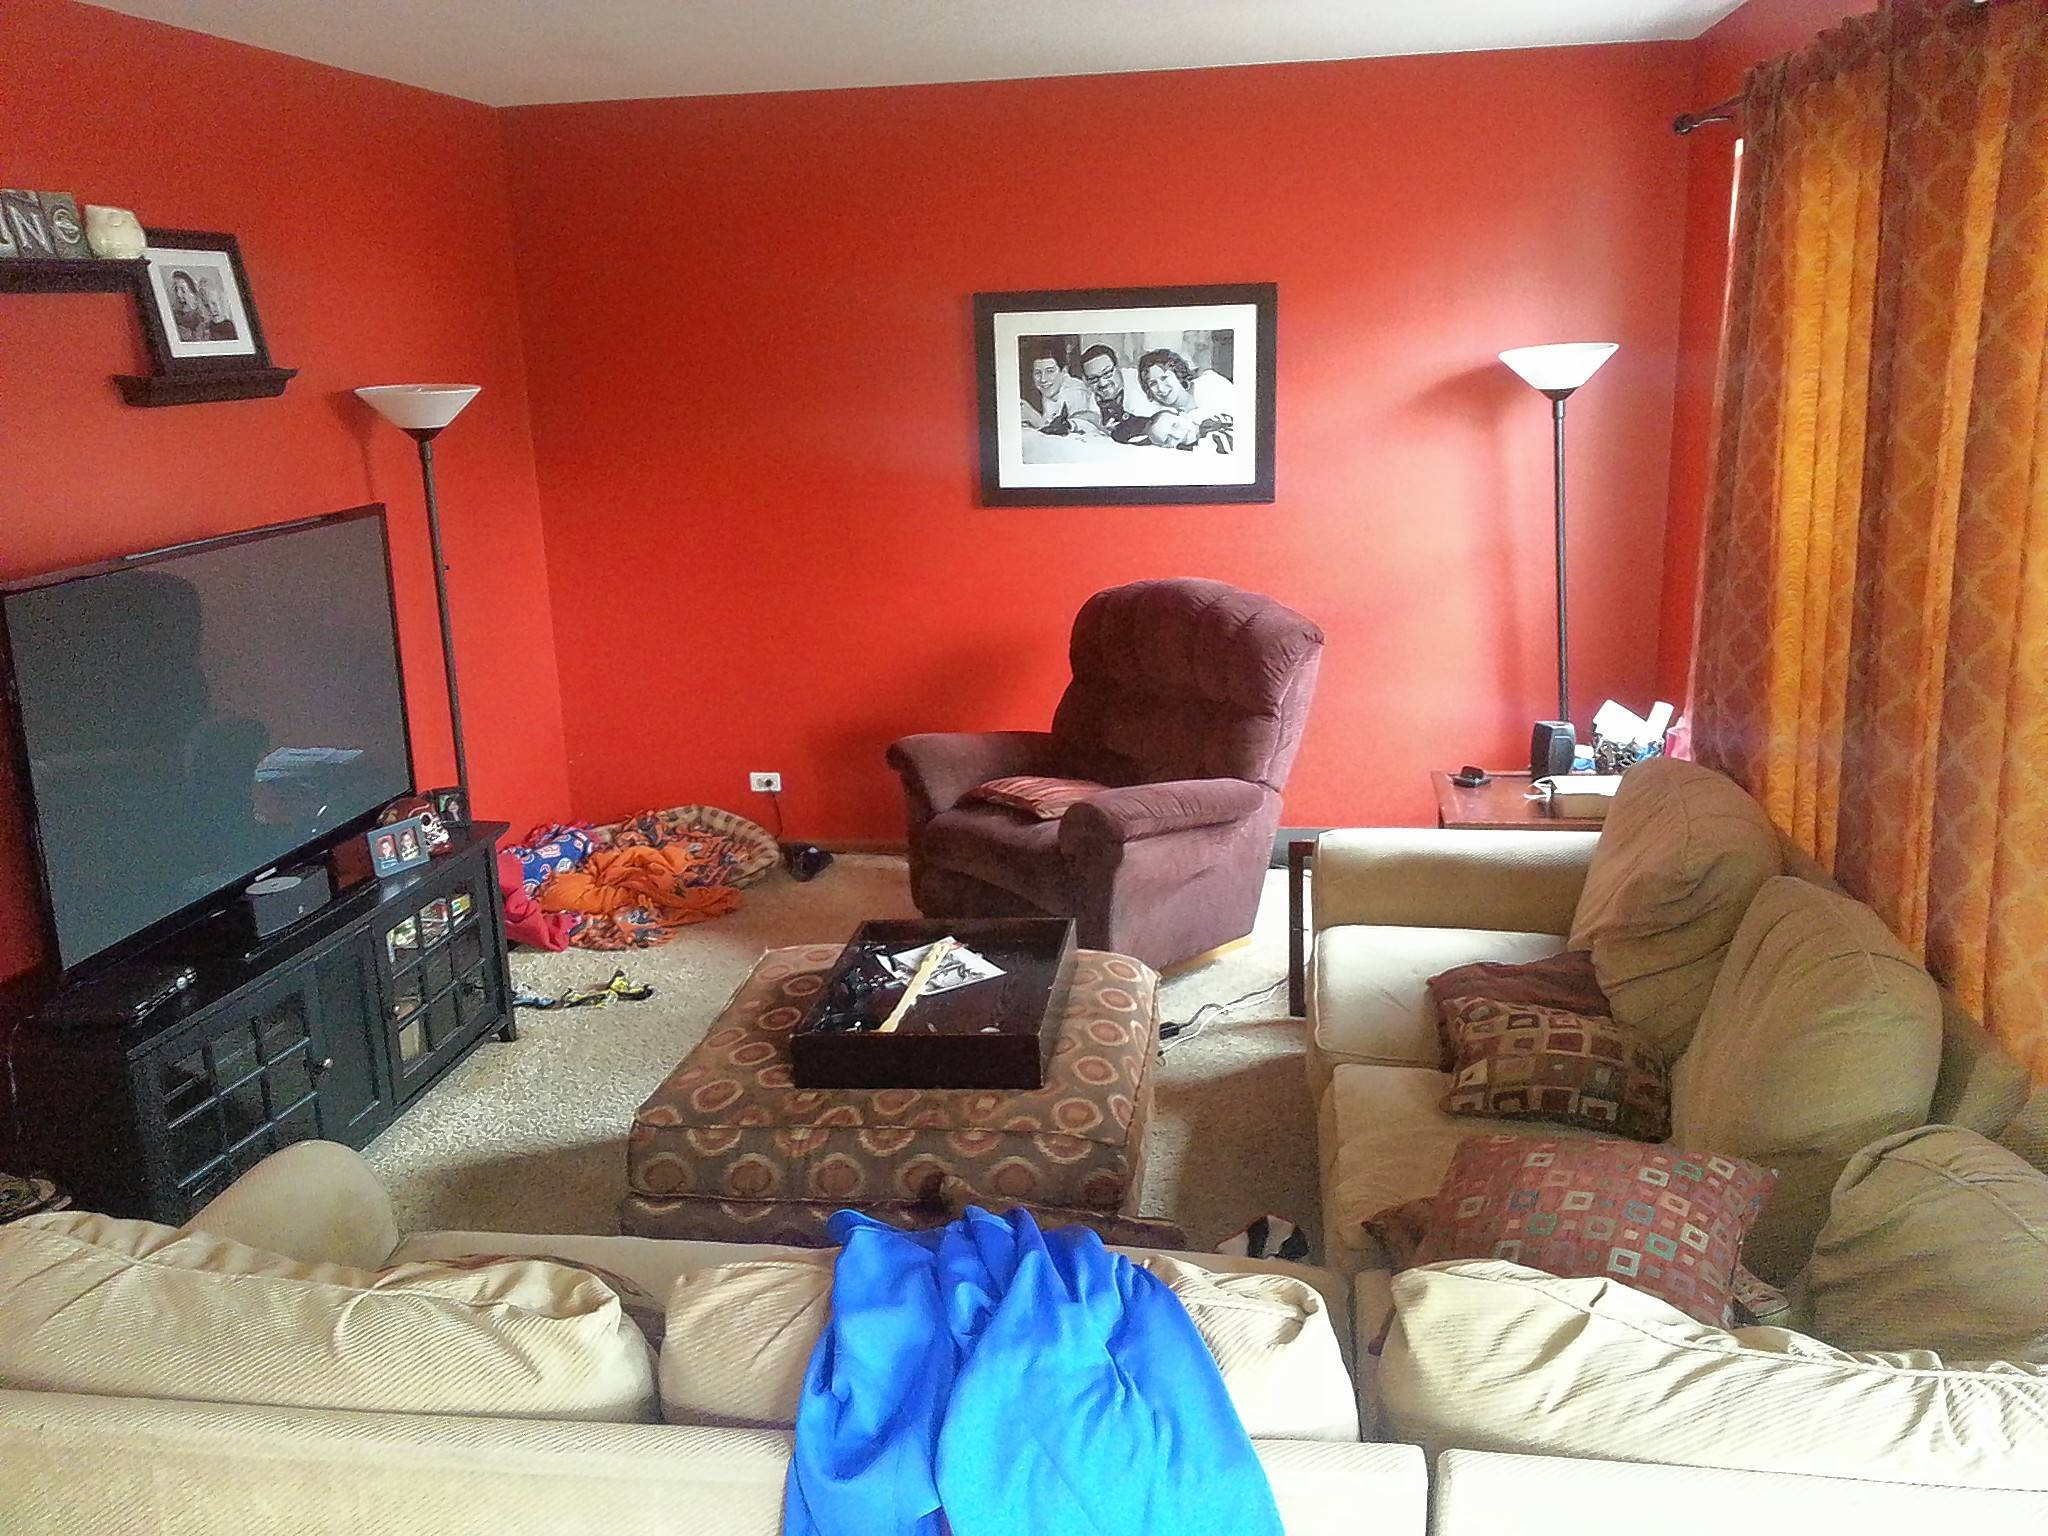 Wendy Zumpano Of Gurnee Knows Her Orange Family Room Doesnu0027t Work And Is In